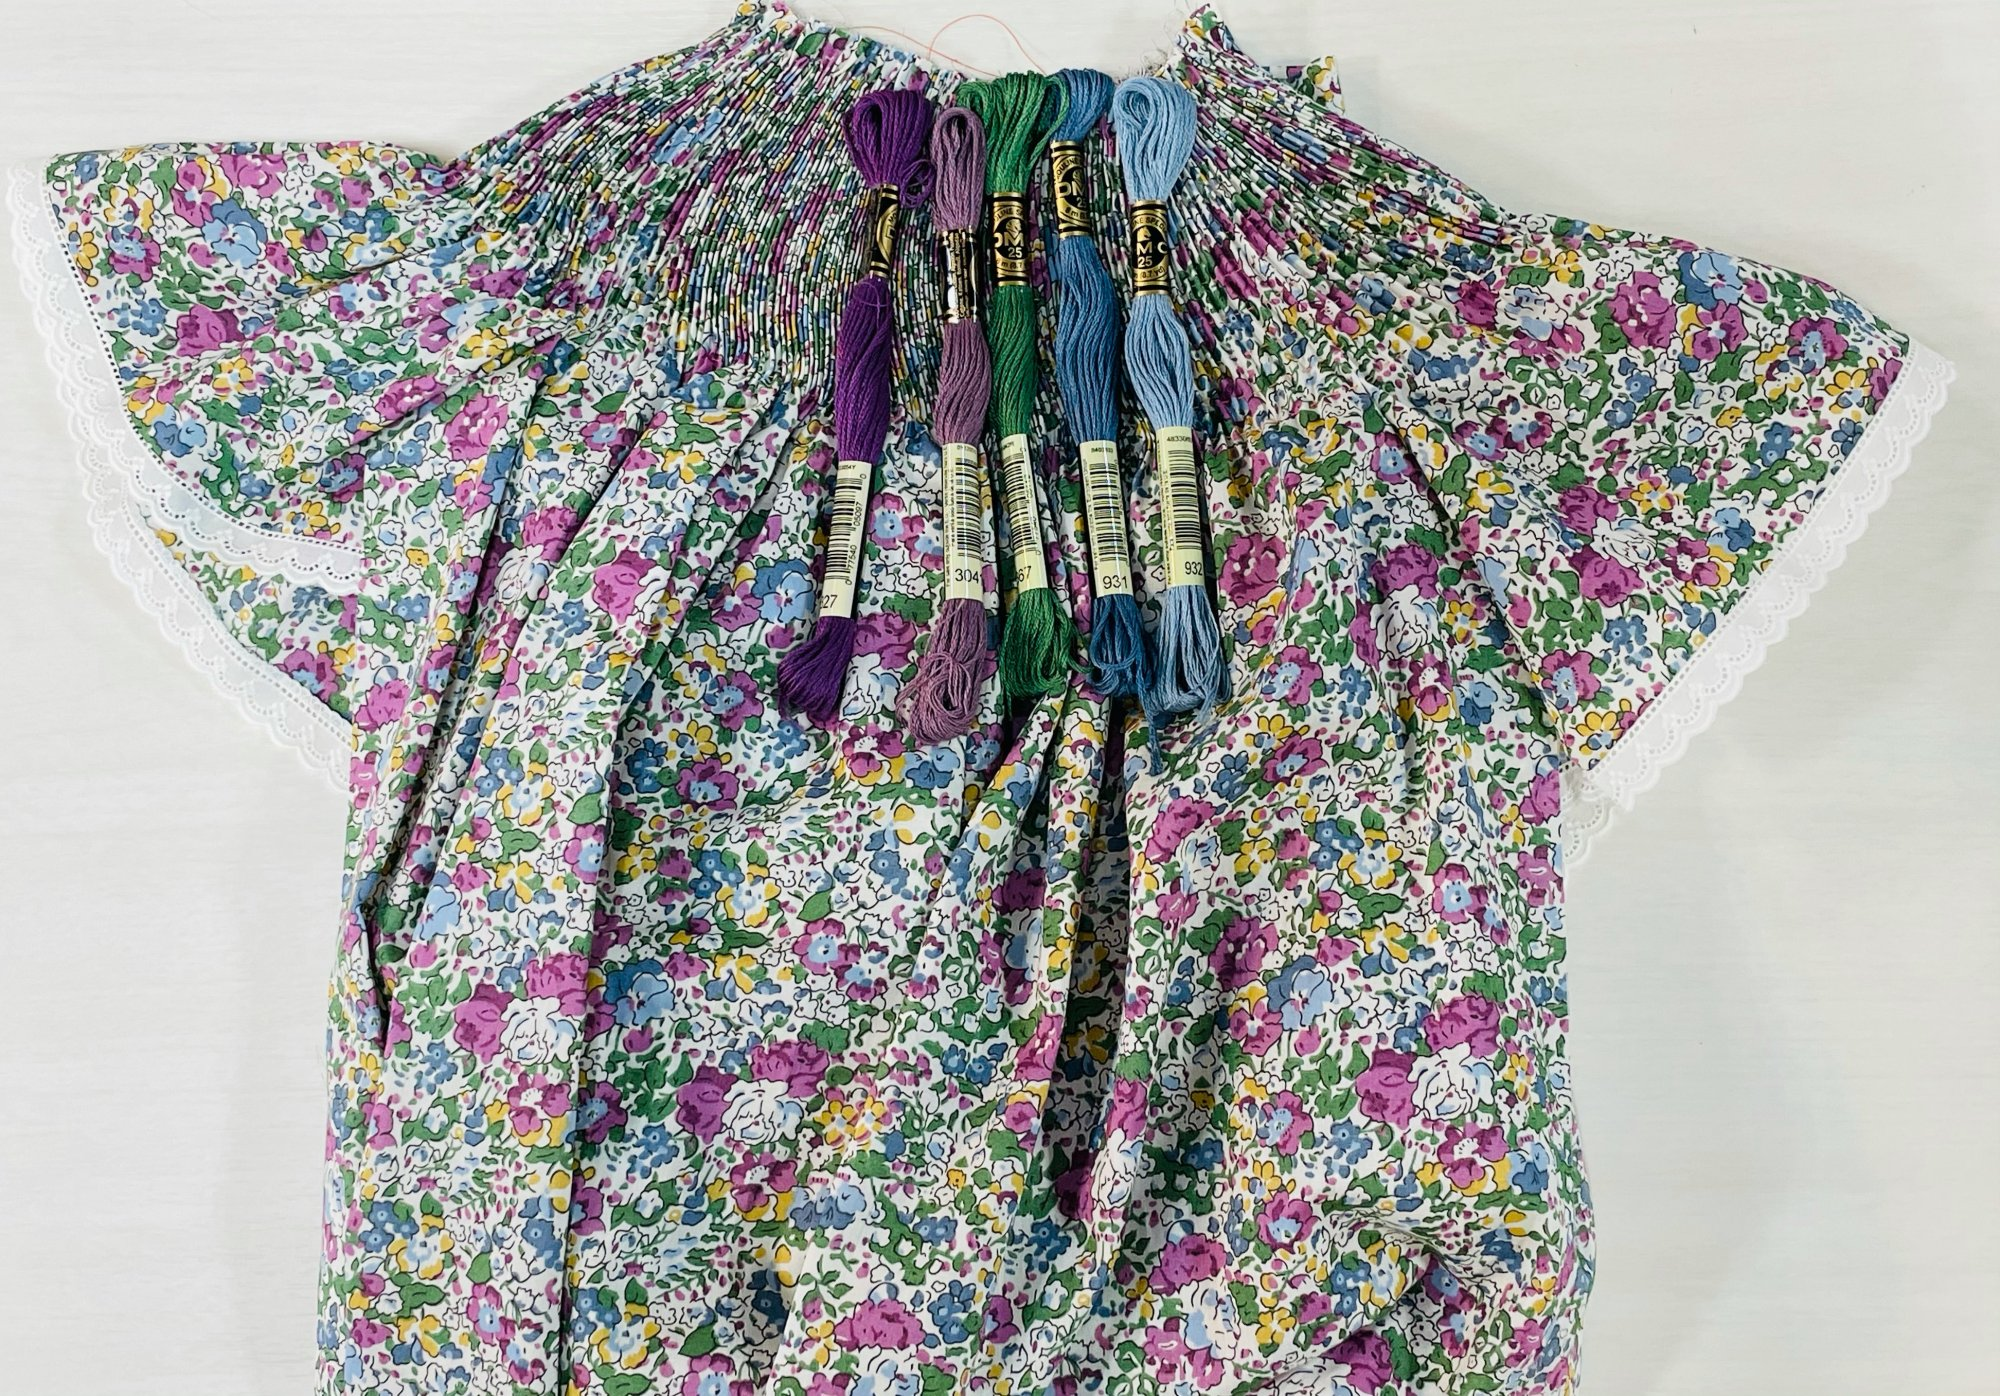 Bishop Kit - Claire Aude C Liberty of London Tana Lawn (Shown with Optional Lace Edging at Sleeves)